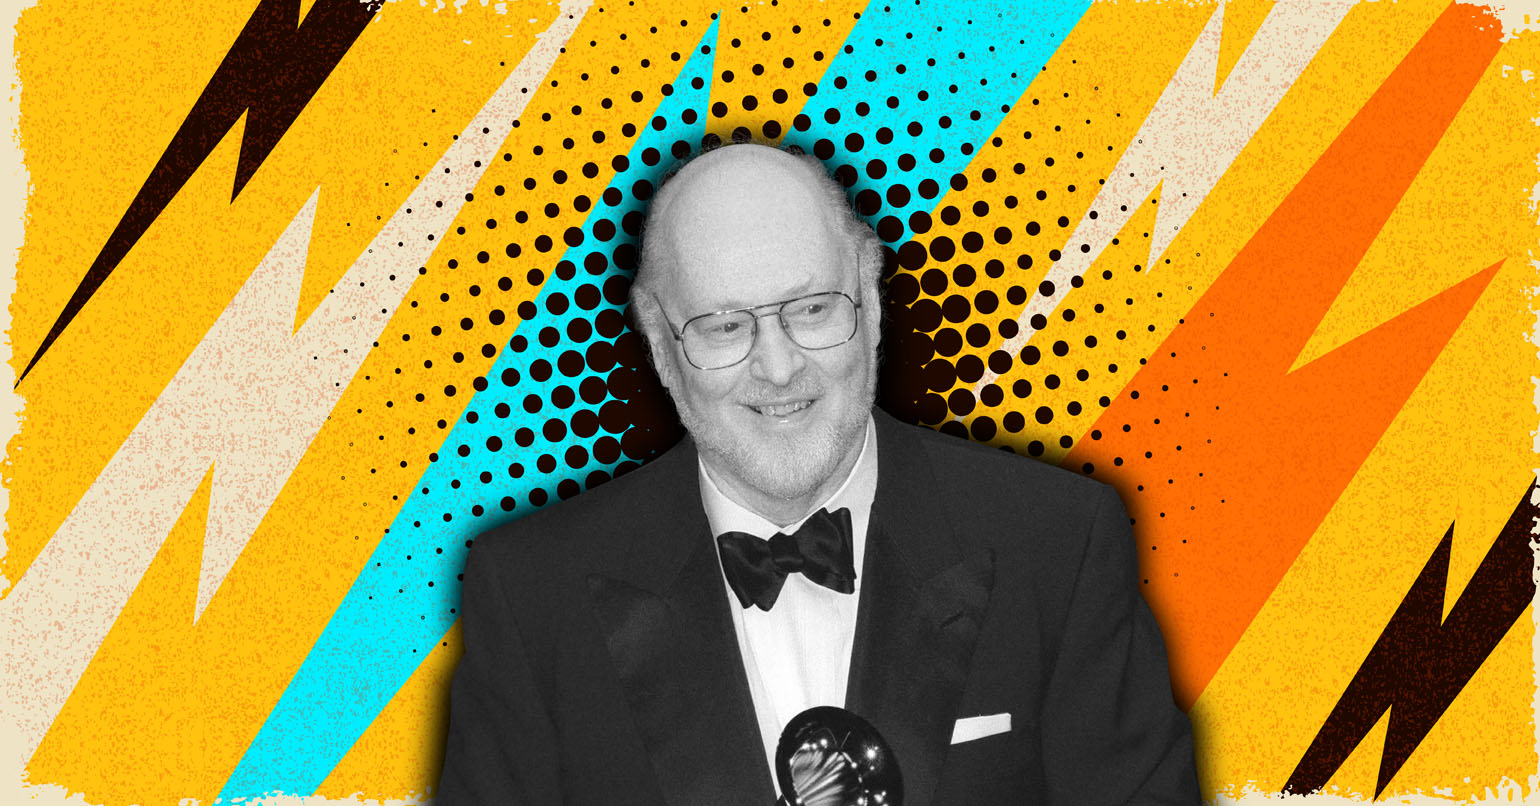 John-Williams The most successful film scorrer of all time.